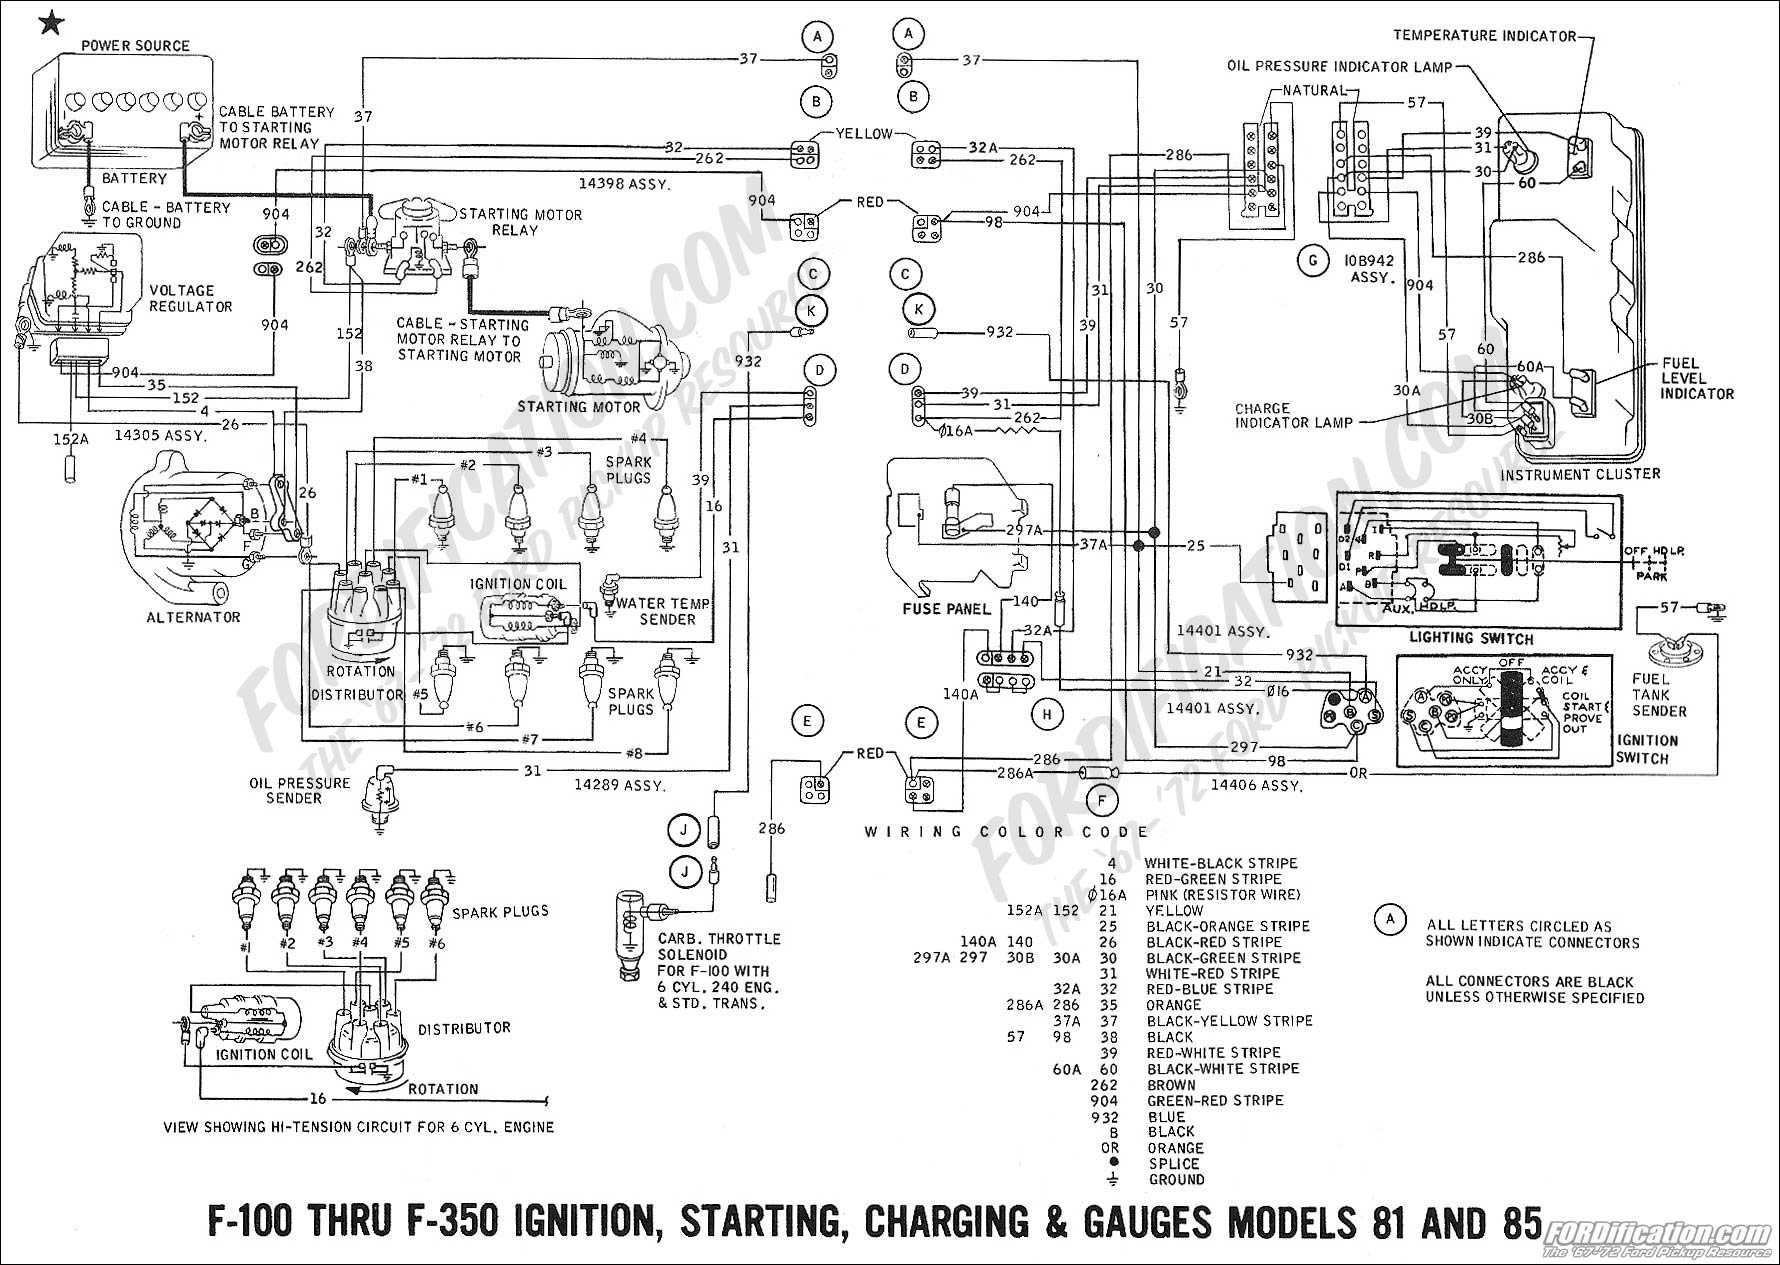 Wildfire Wfh50 S2 Scooter Wiring Diagram - 4 3l Vortec Engine Component  Diagram - dumble.tukune.jeanjaures37.fr | Wildfire Wfh50 S2 Scooter Wiring Diagram |  | Wiring Diagram Resource